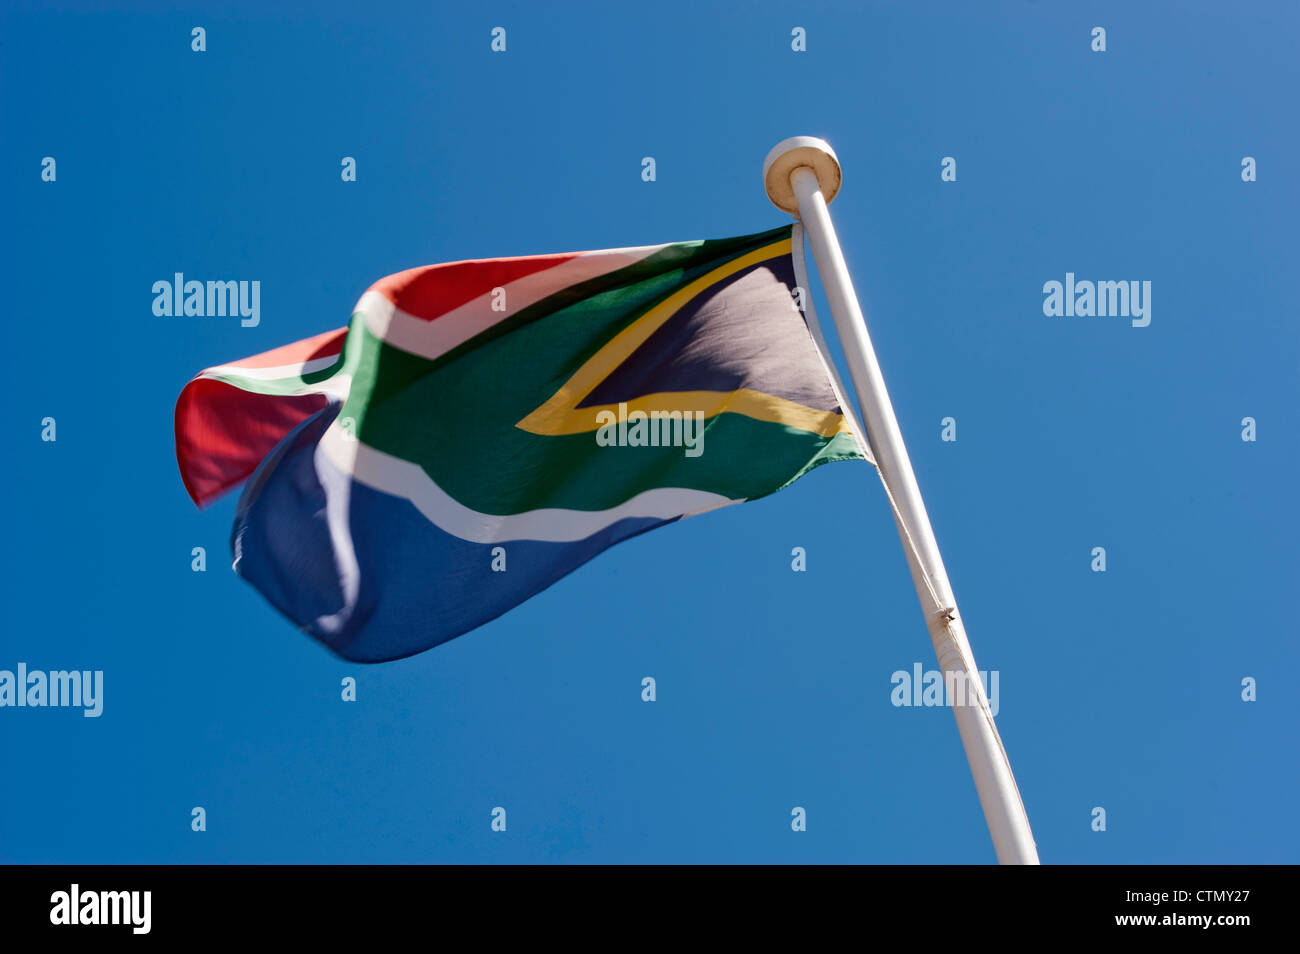 South African Flag Stockfotos & South African Flag Bilder - Alamy